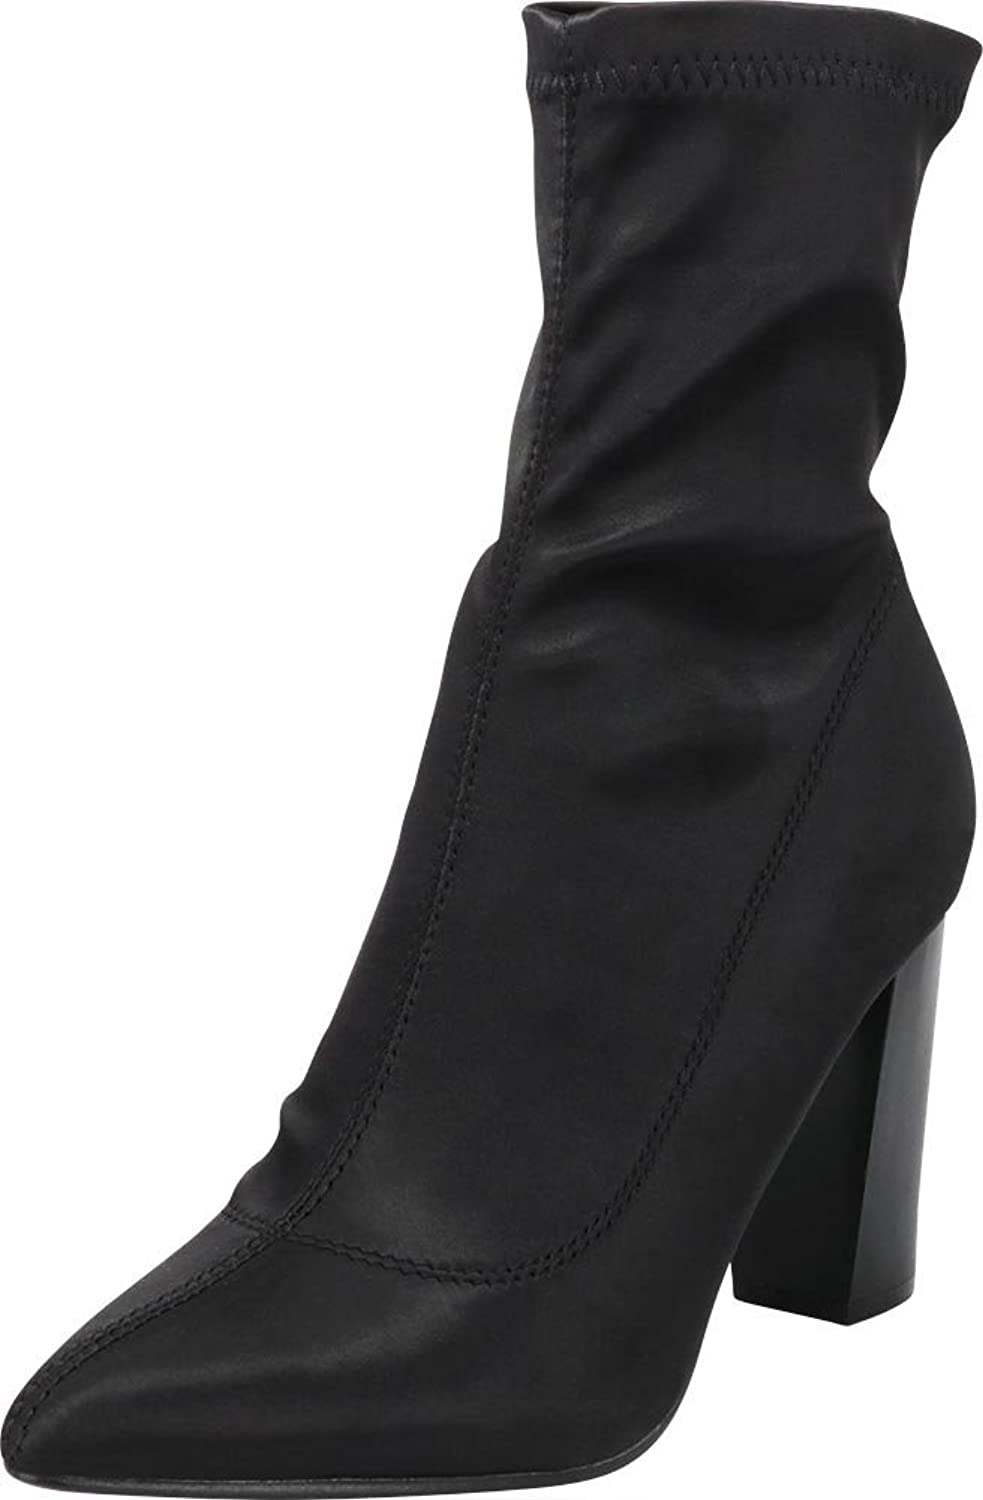 Cambridge Select Women's Closed Pointed Toe Soft Stretch Sock Style Slip-On Chunky Block Heel Ankle Bootie